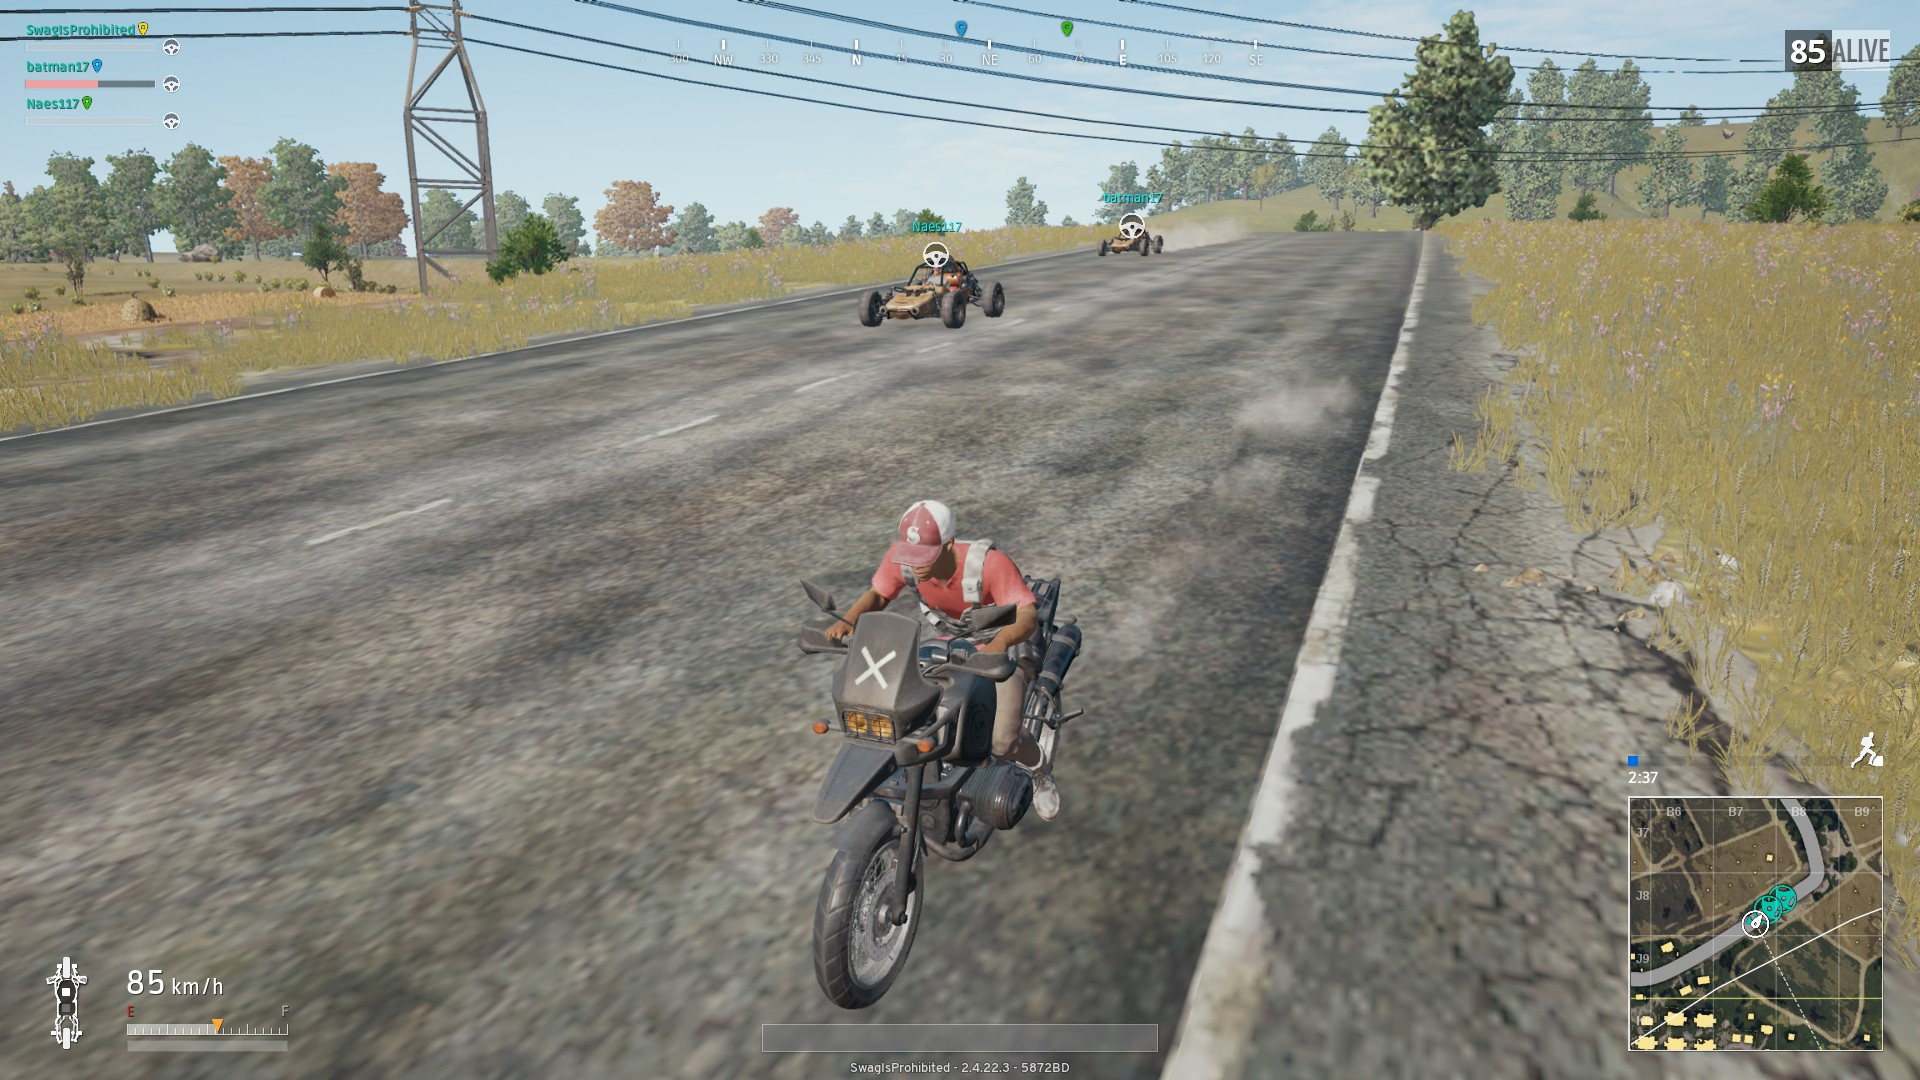 Steam Community Guide How To Improve In Pubg: Steam Community :: Guide :: How To Mad Max In PUBG